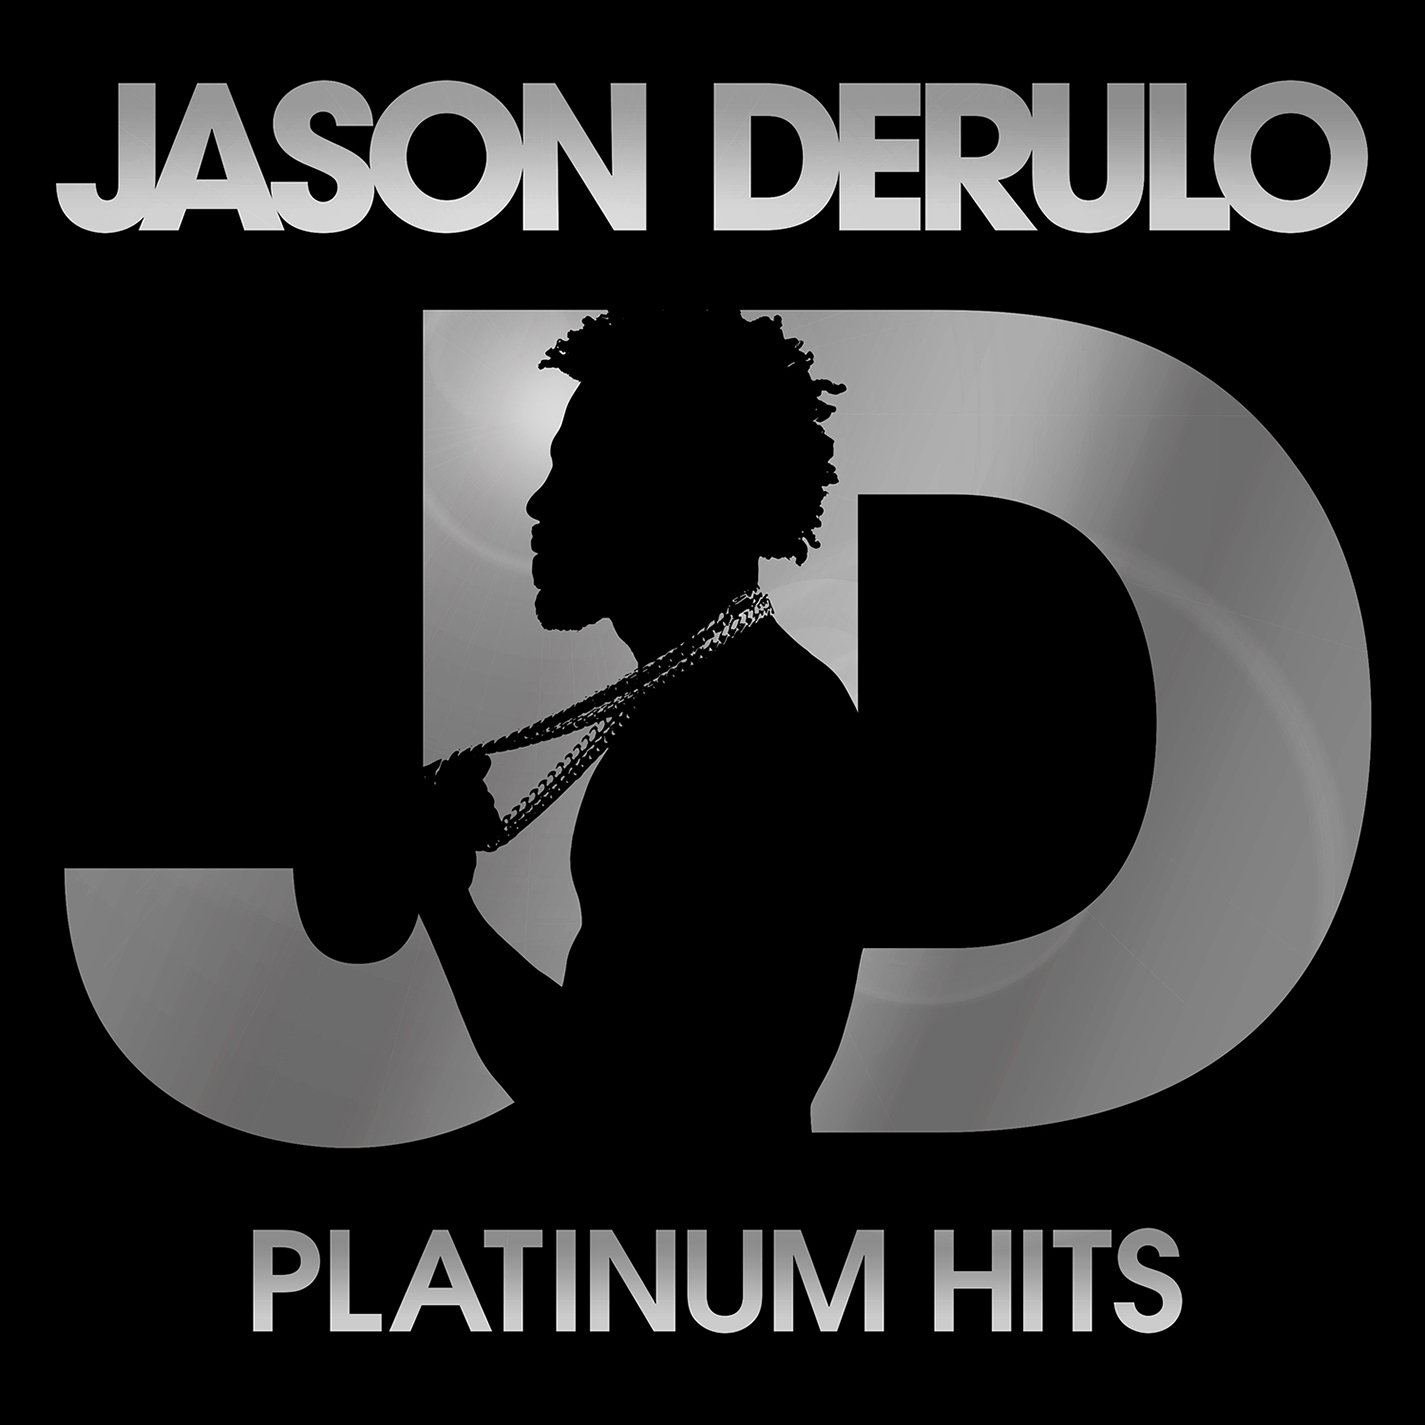 Platinum Hits - Jason Derulo: Amazon.de: Musik